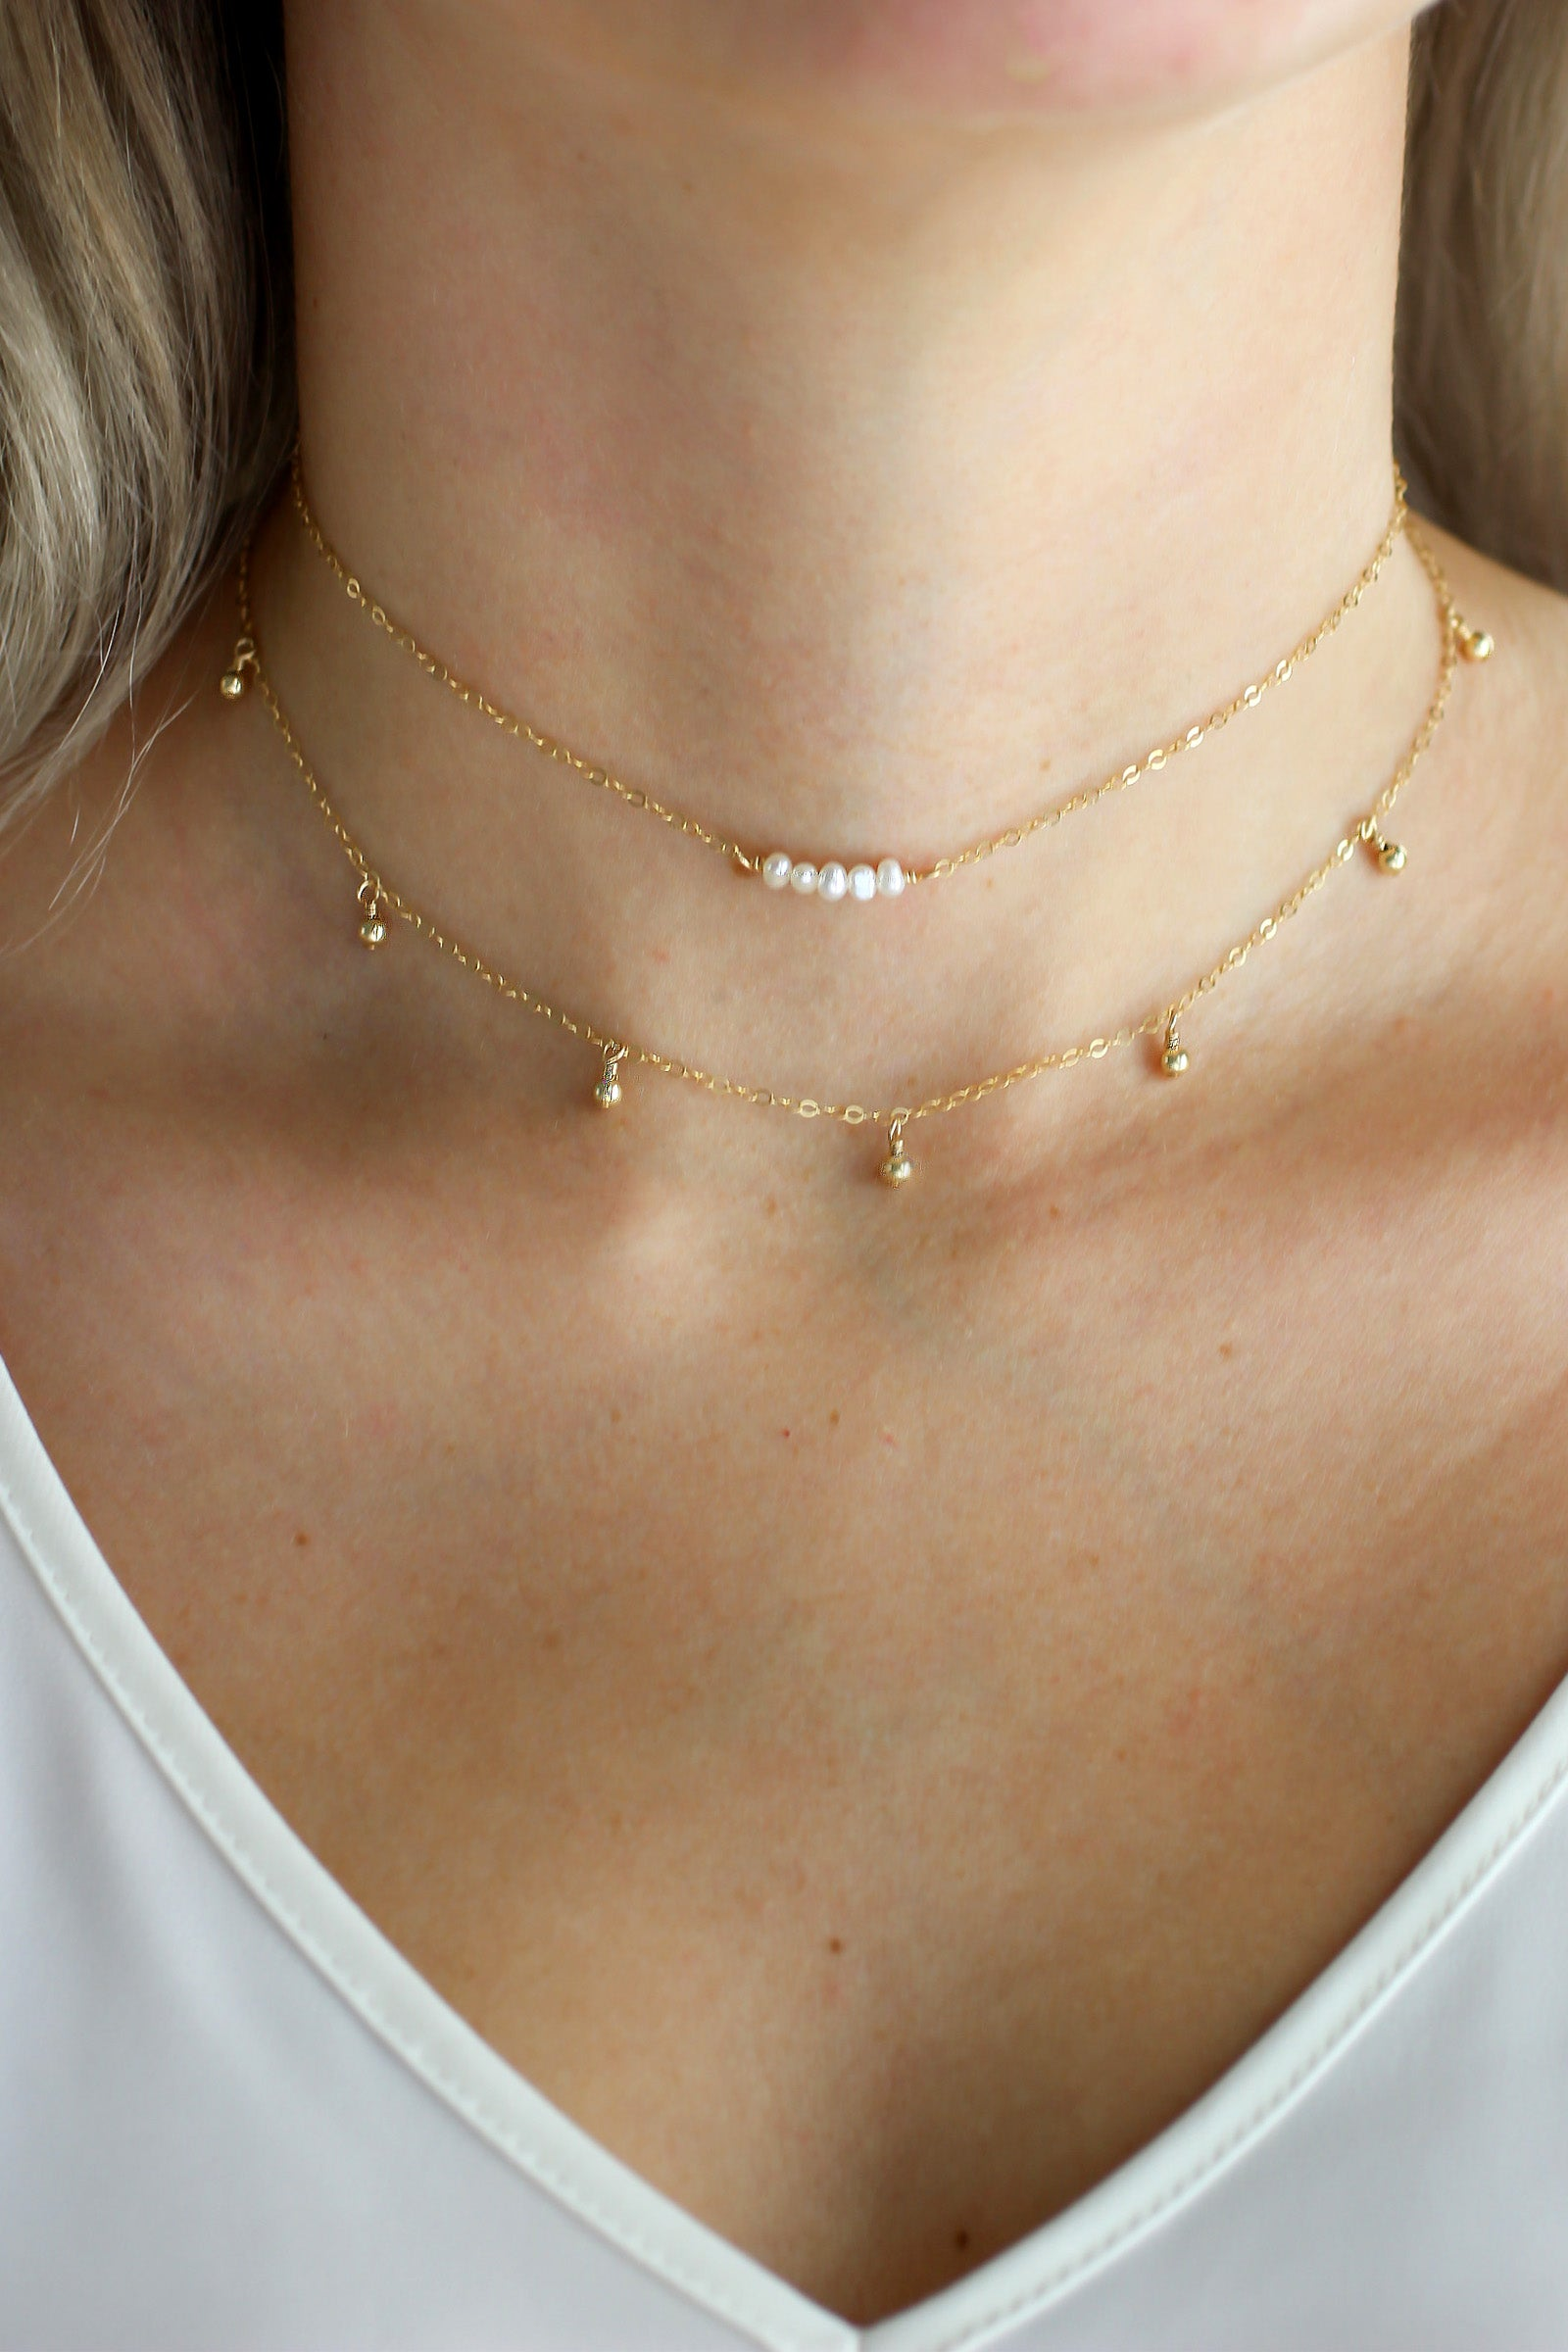 mothers day gift for Her Choker Necklace Gift for Her Dainty Pearl and Gold Choker Necklace Minimal Pearl Choker Layered Necklace